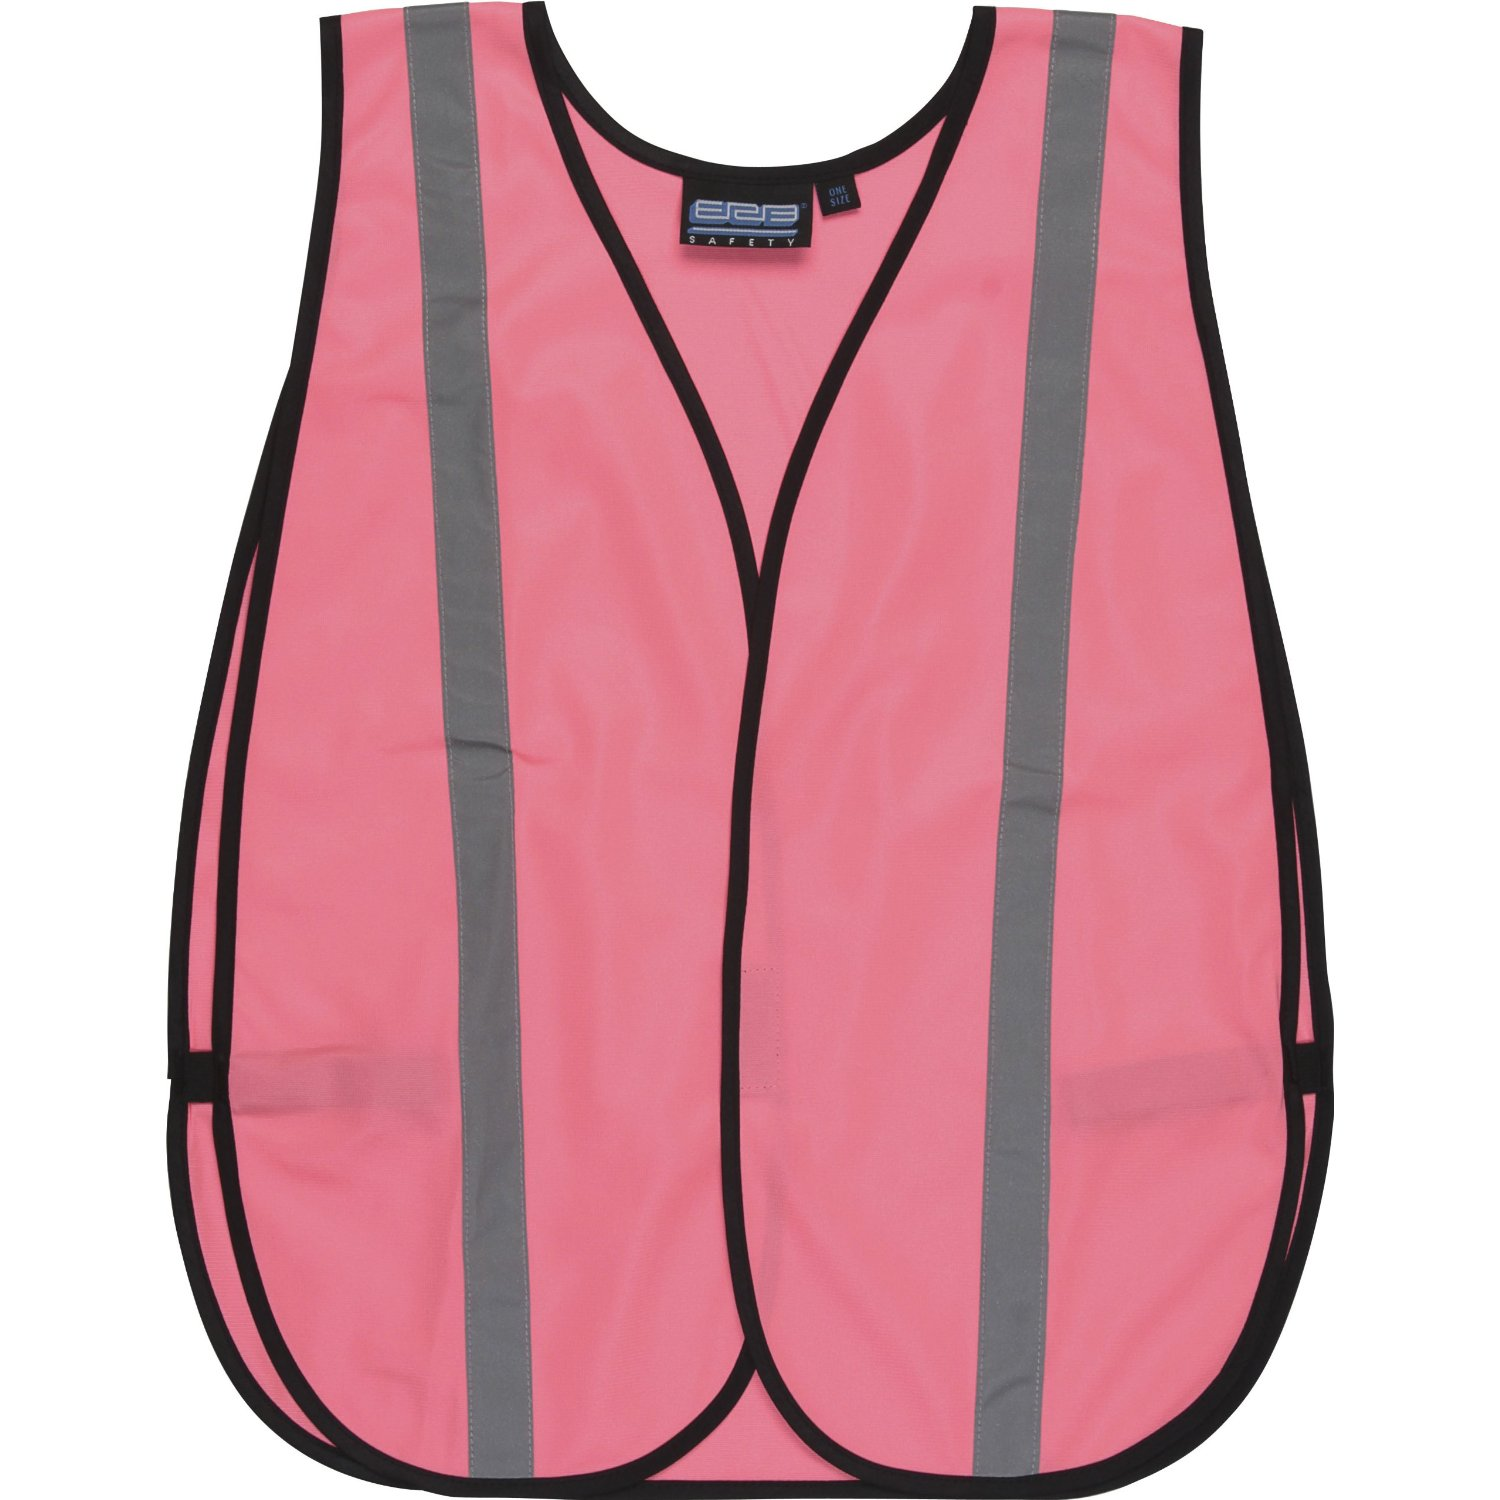 ERB 61728 S102 Non ANSI Safety Vest, Pink [Tools & Home Improvement]